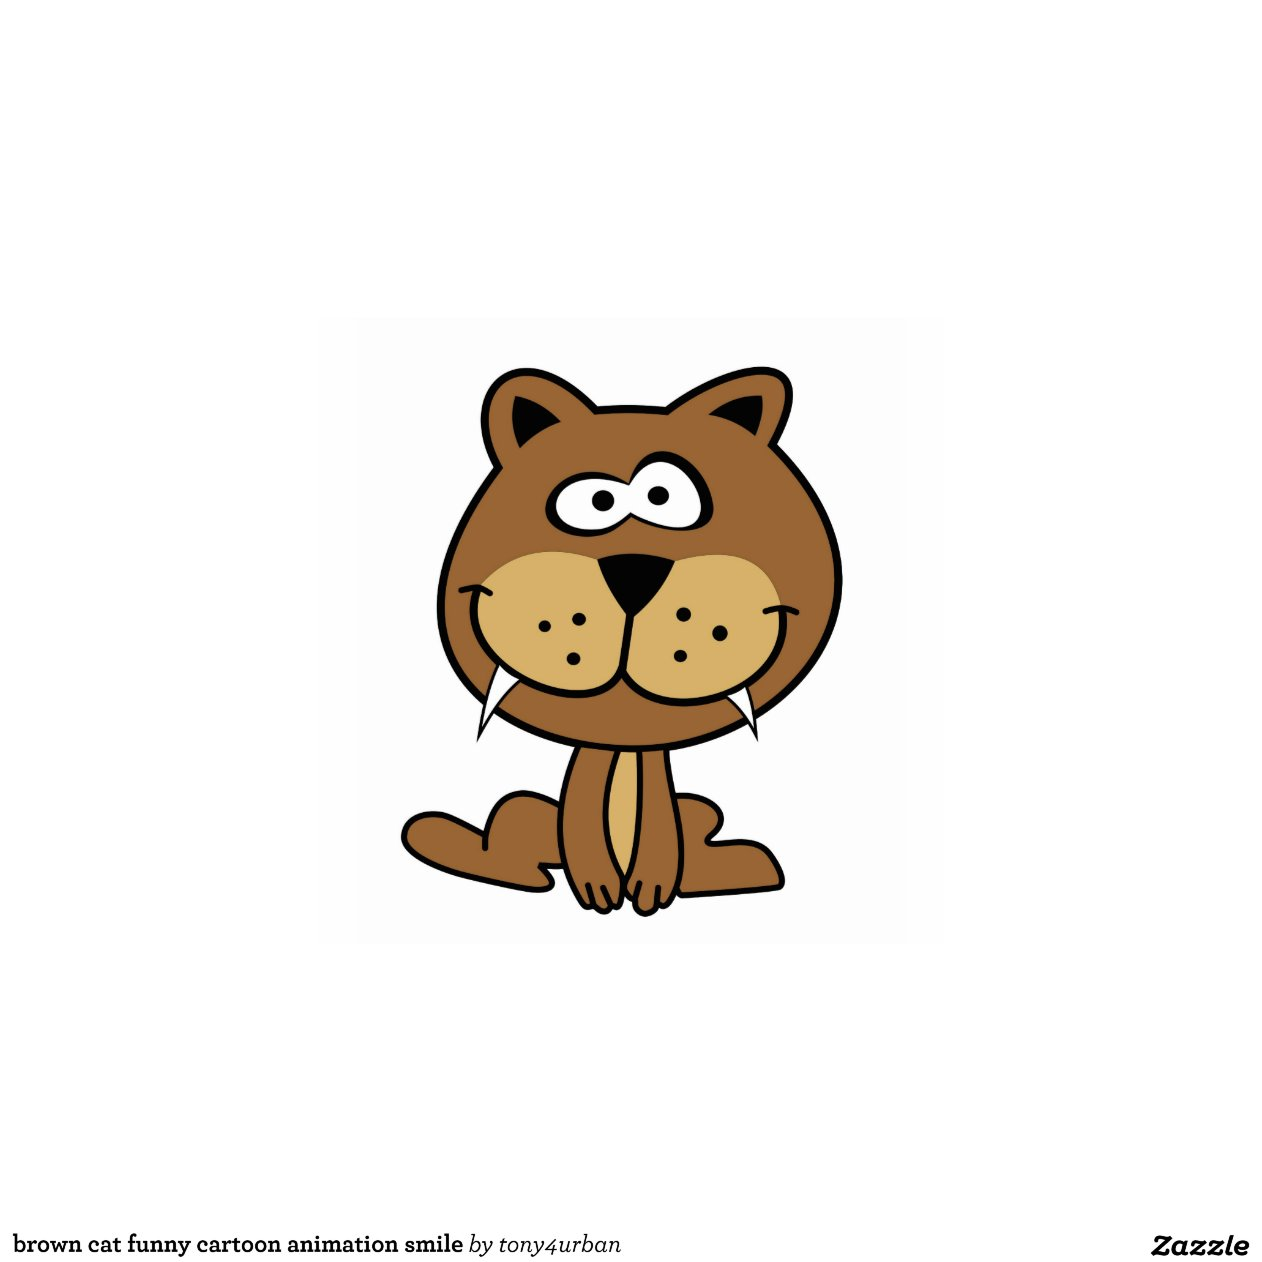 brown cat funny cartoon animation smile cut outs | Zazzle